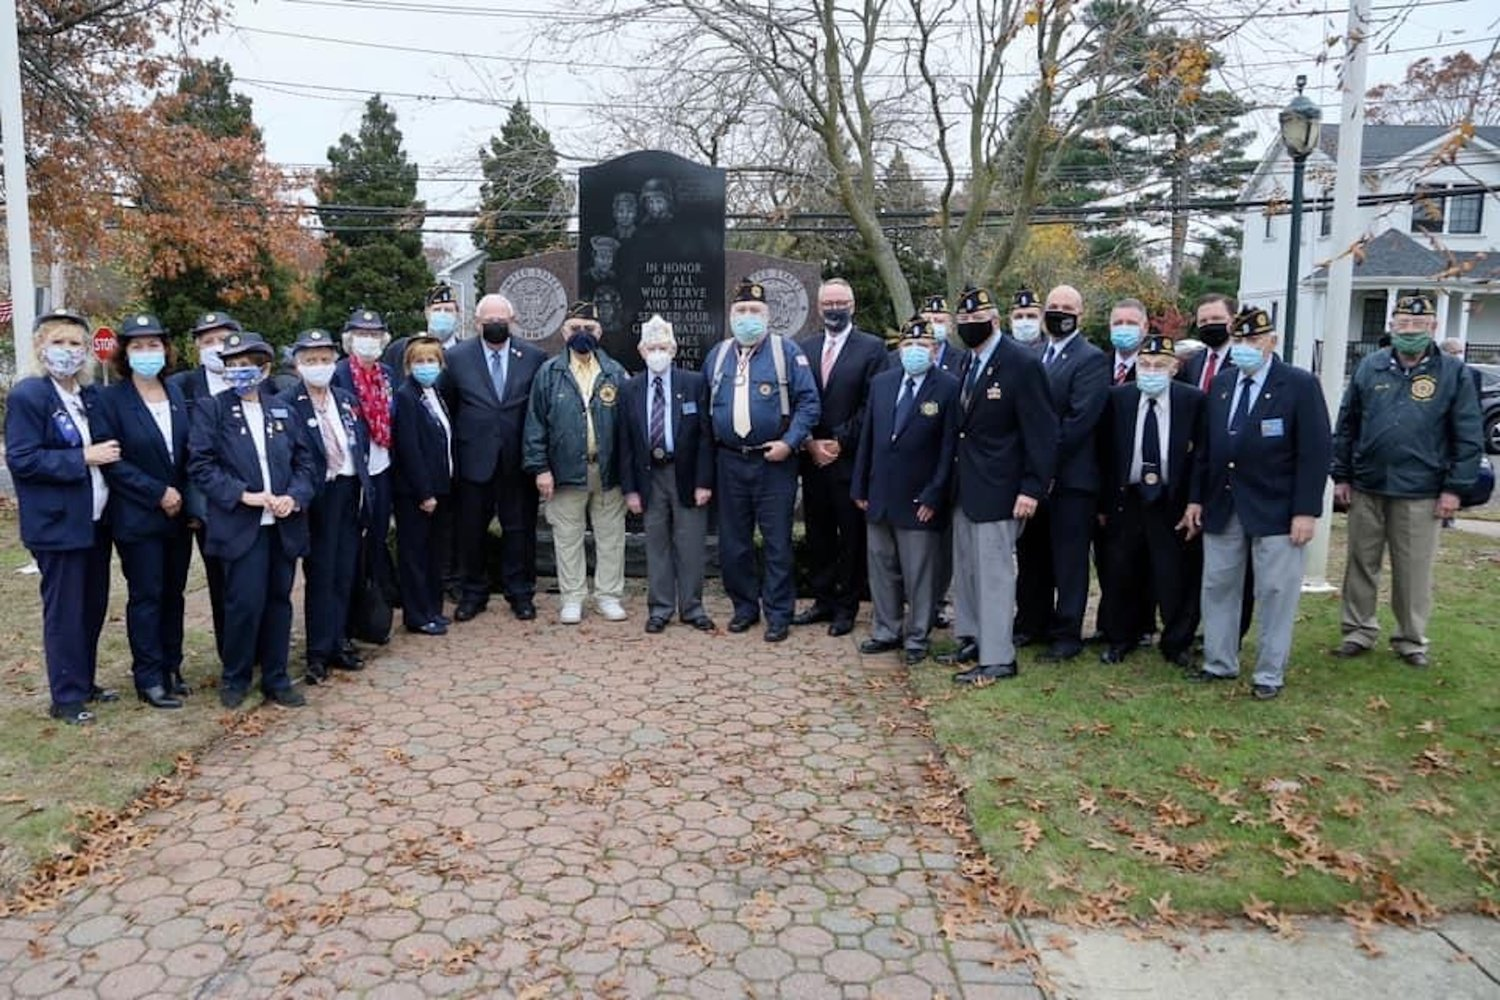 Local service members gathered at Veterans Memorial Park in Merrick on Nov. 11 to pay tribute to those who have answered the call to service.